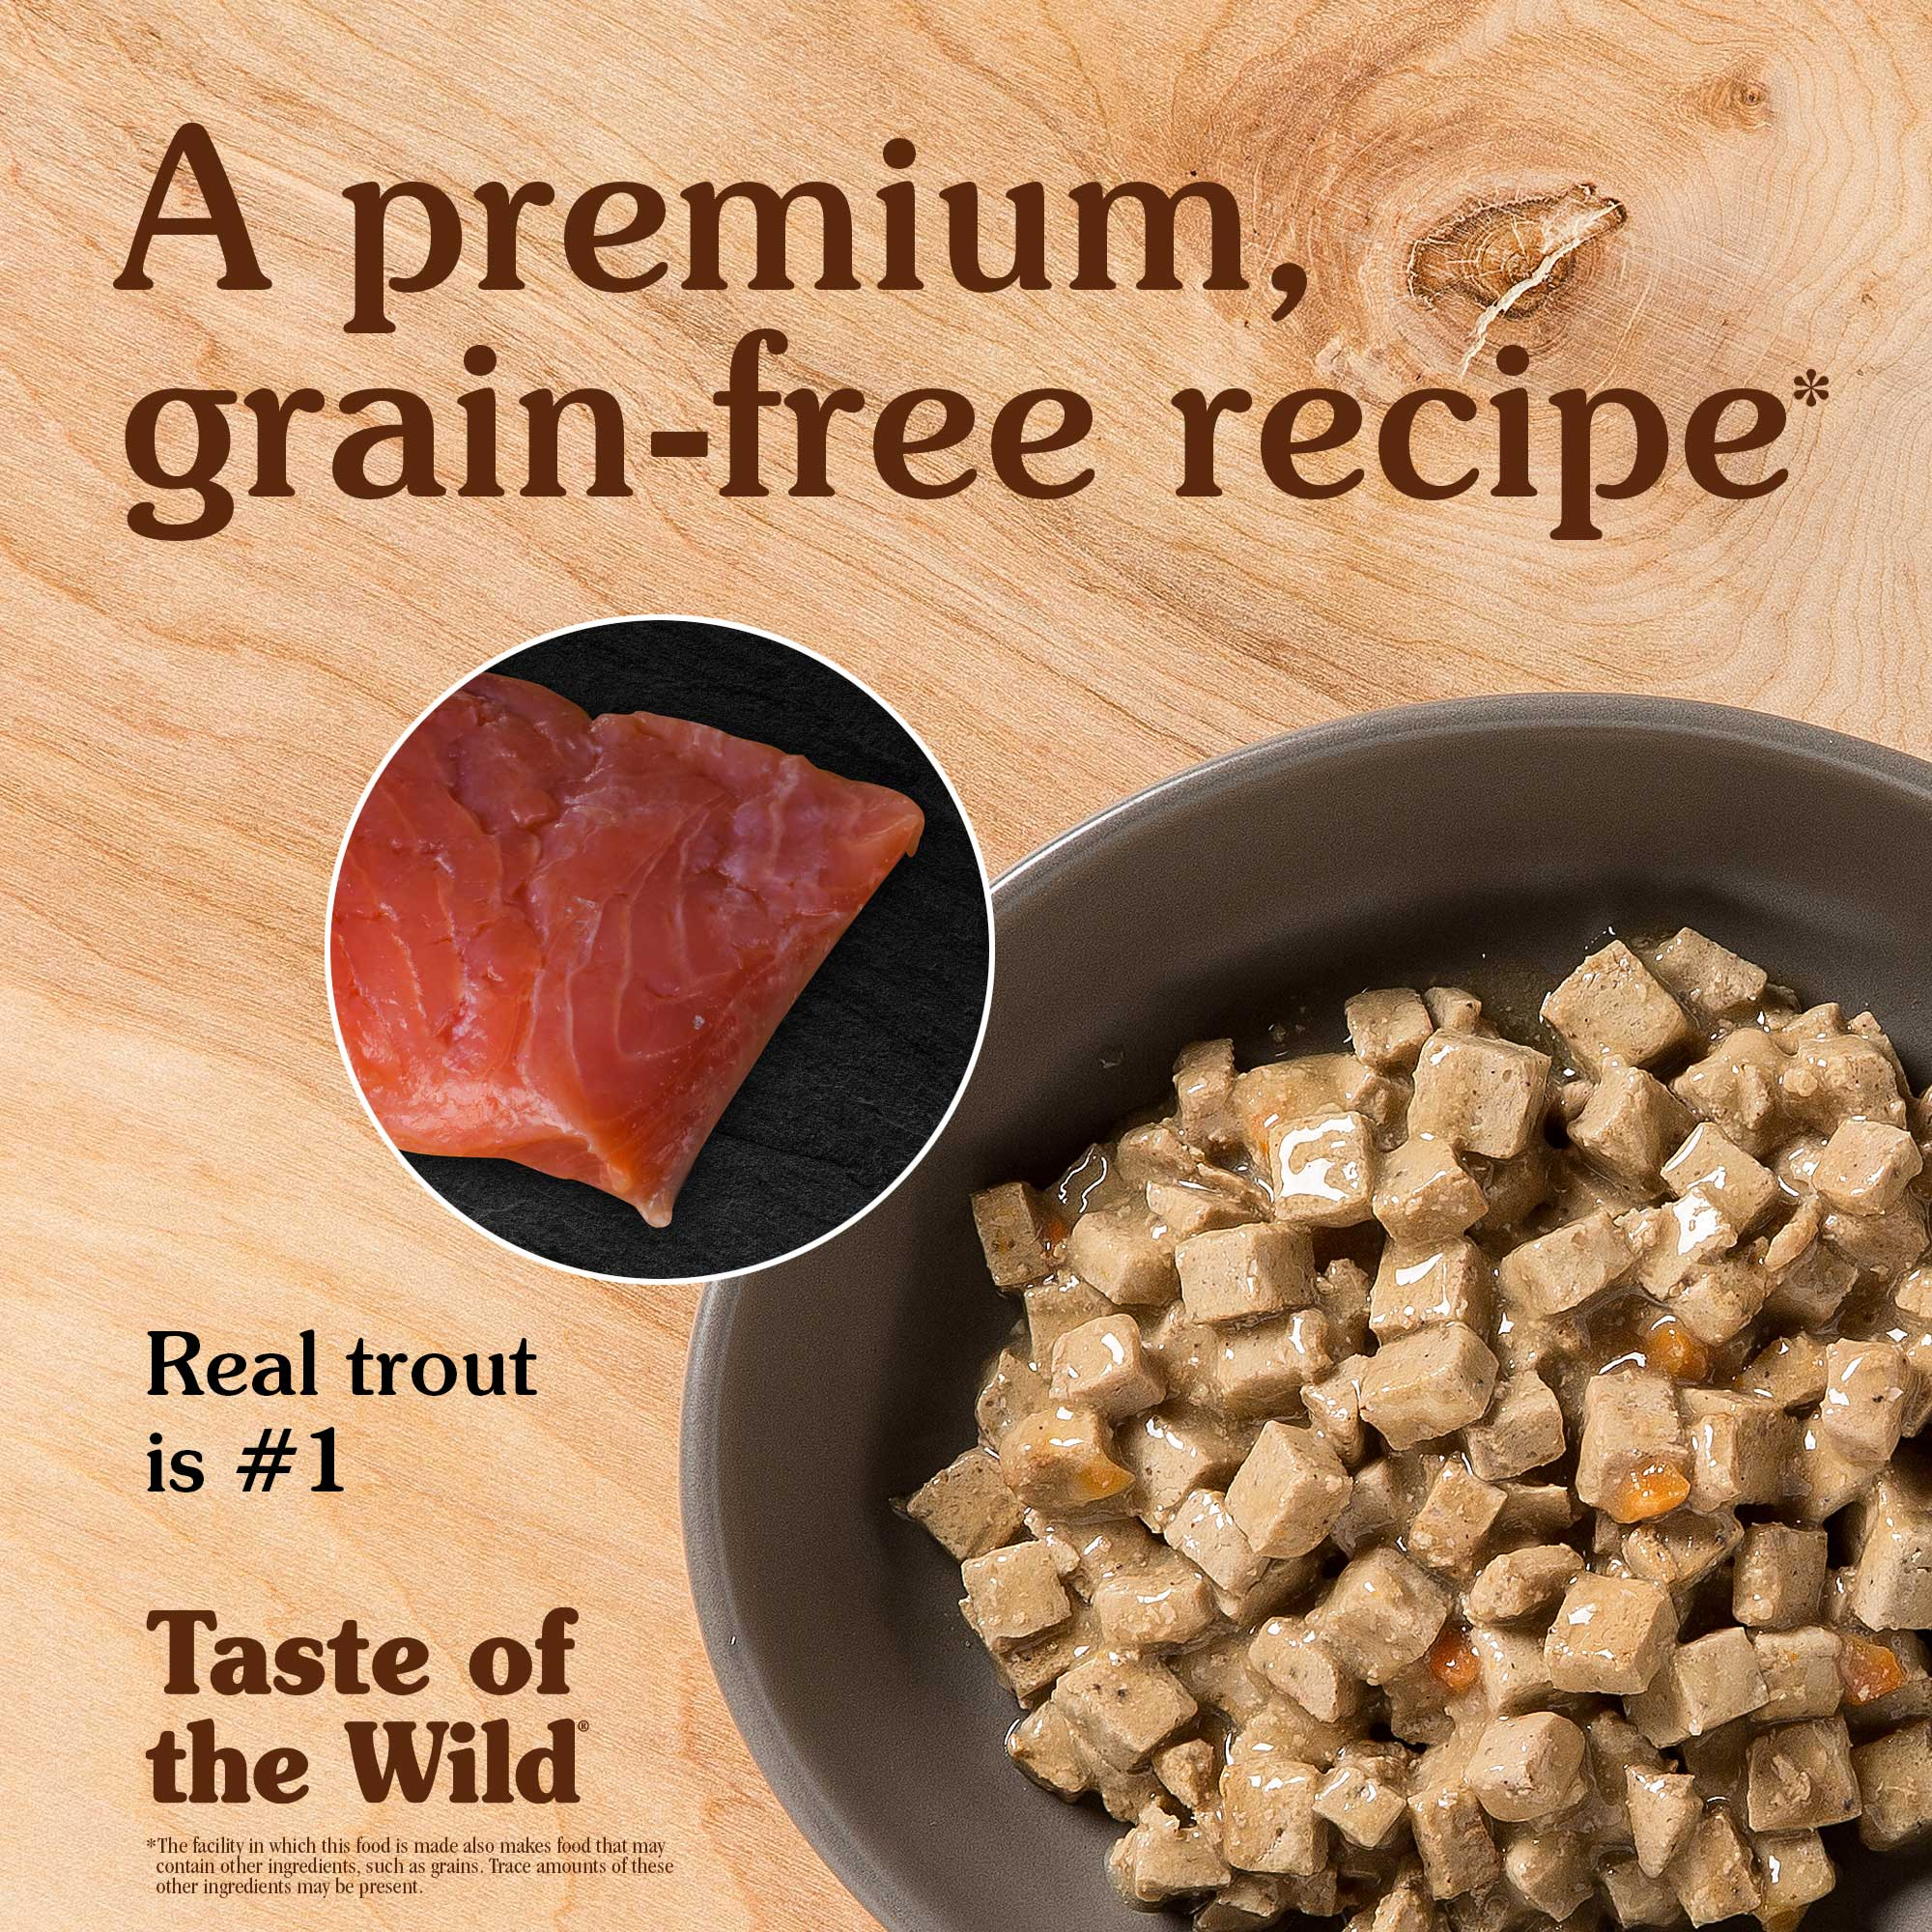 A premium, grain-free recipe. Real trout is #1.